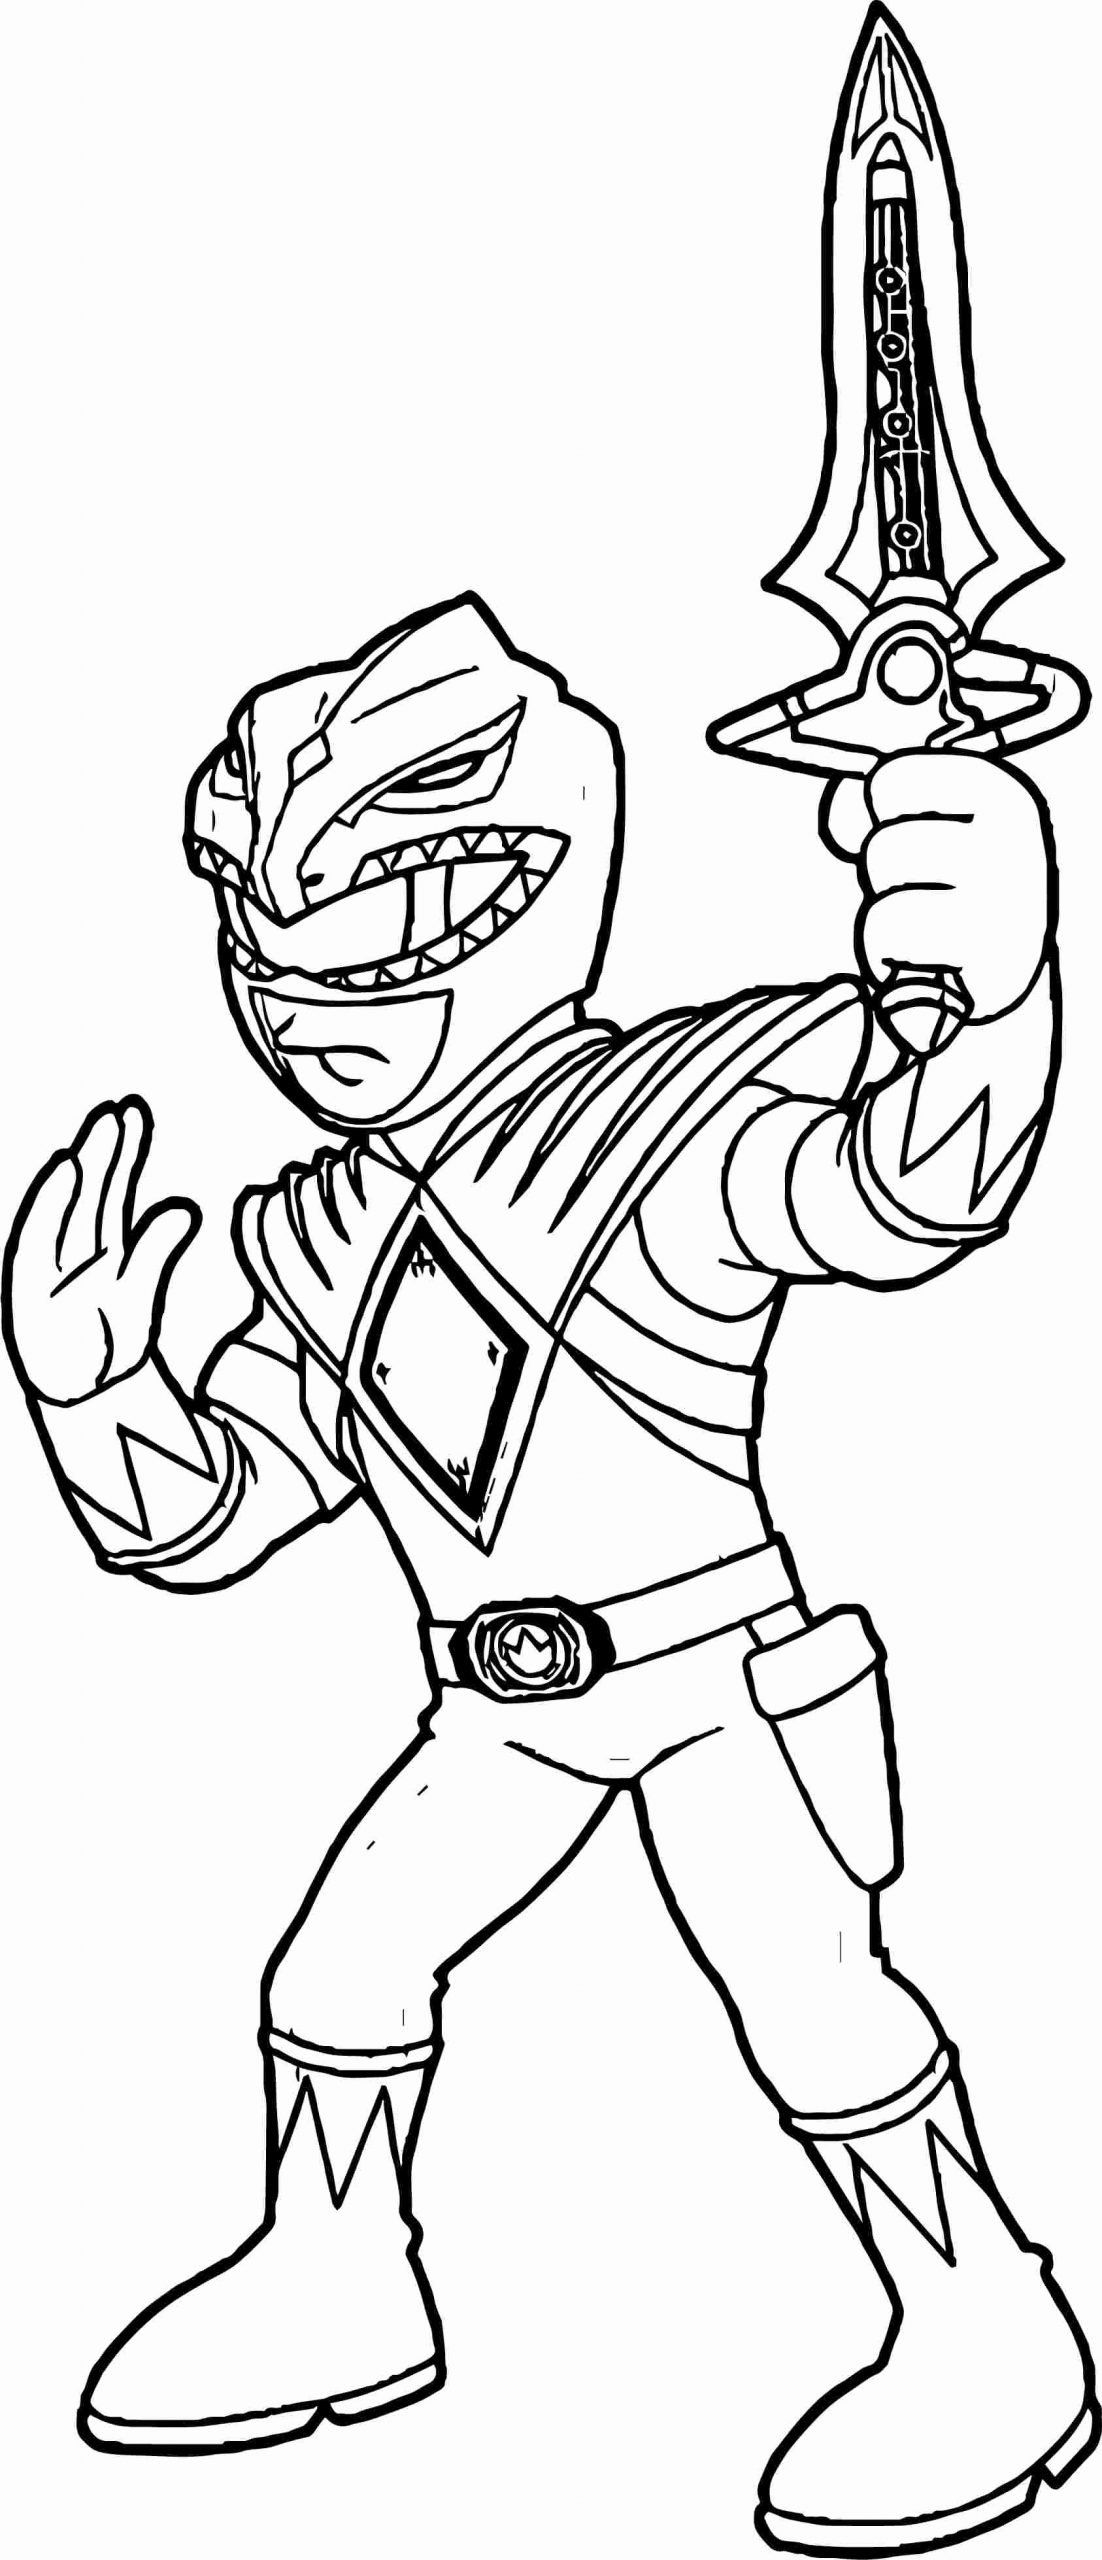 Power Ranger Coloring Page Best Of Printable Coloring Pages Power Rangers Power Rangers In 2020 Power Rangers Coloring Pages Dinosaur Coloring Pages Coloring Pages